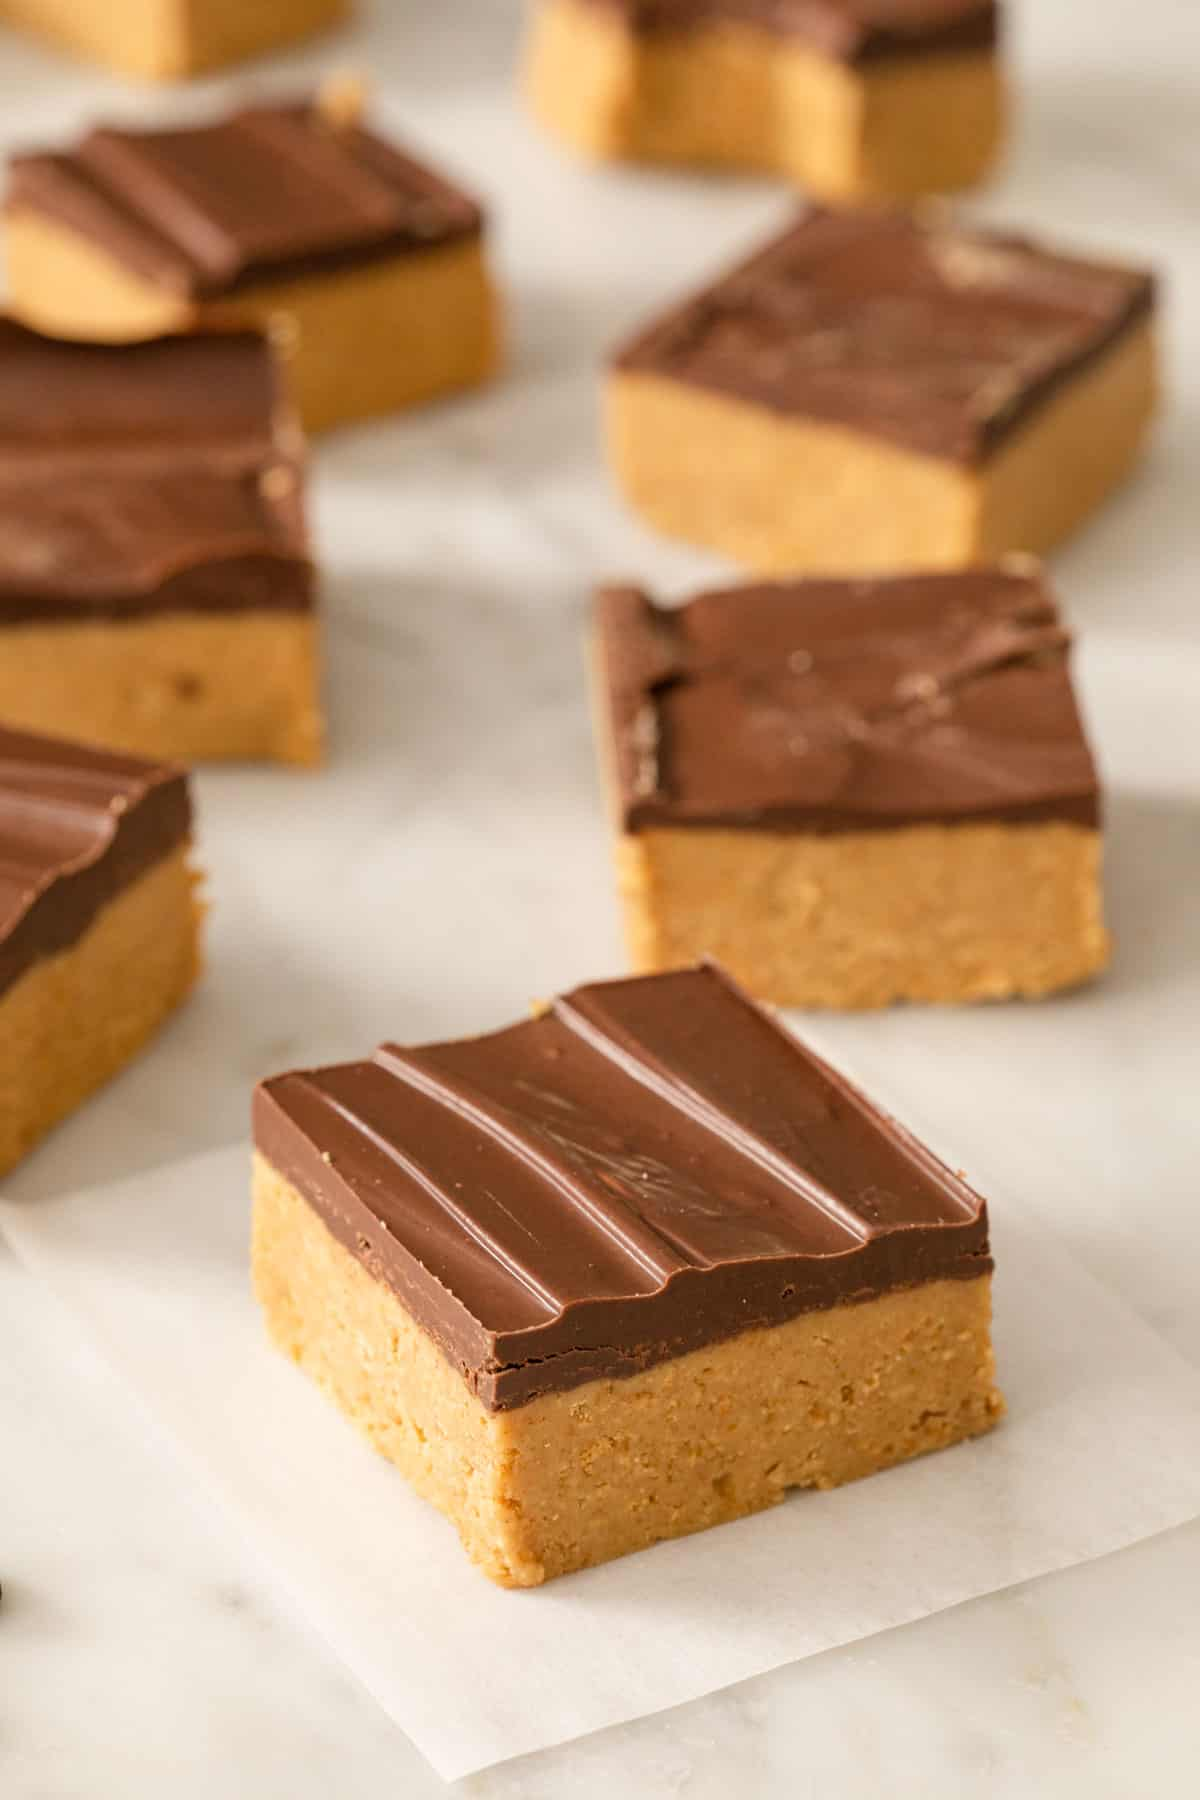 A close up of peanut butter bars on a marble surface